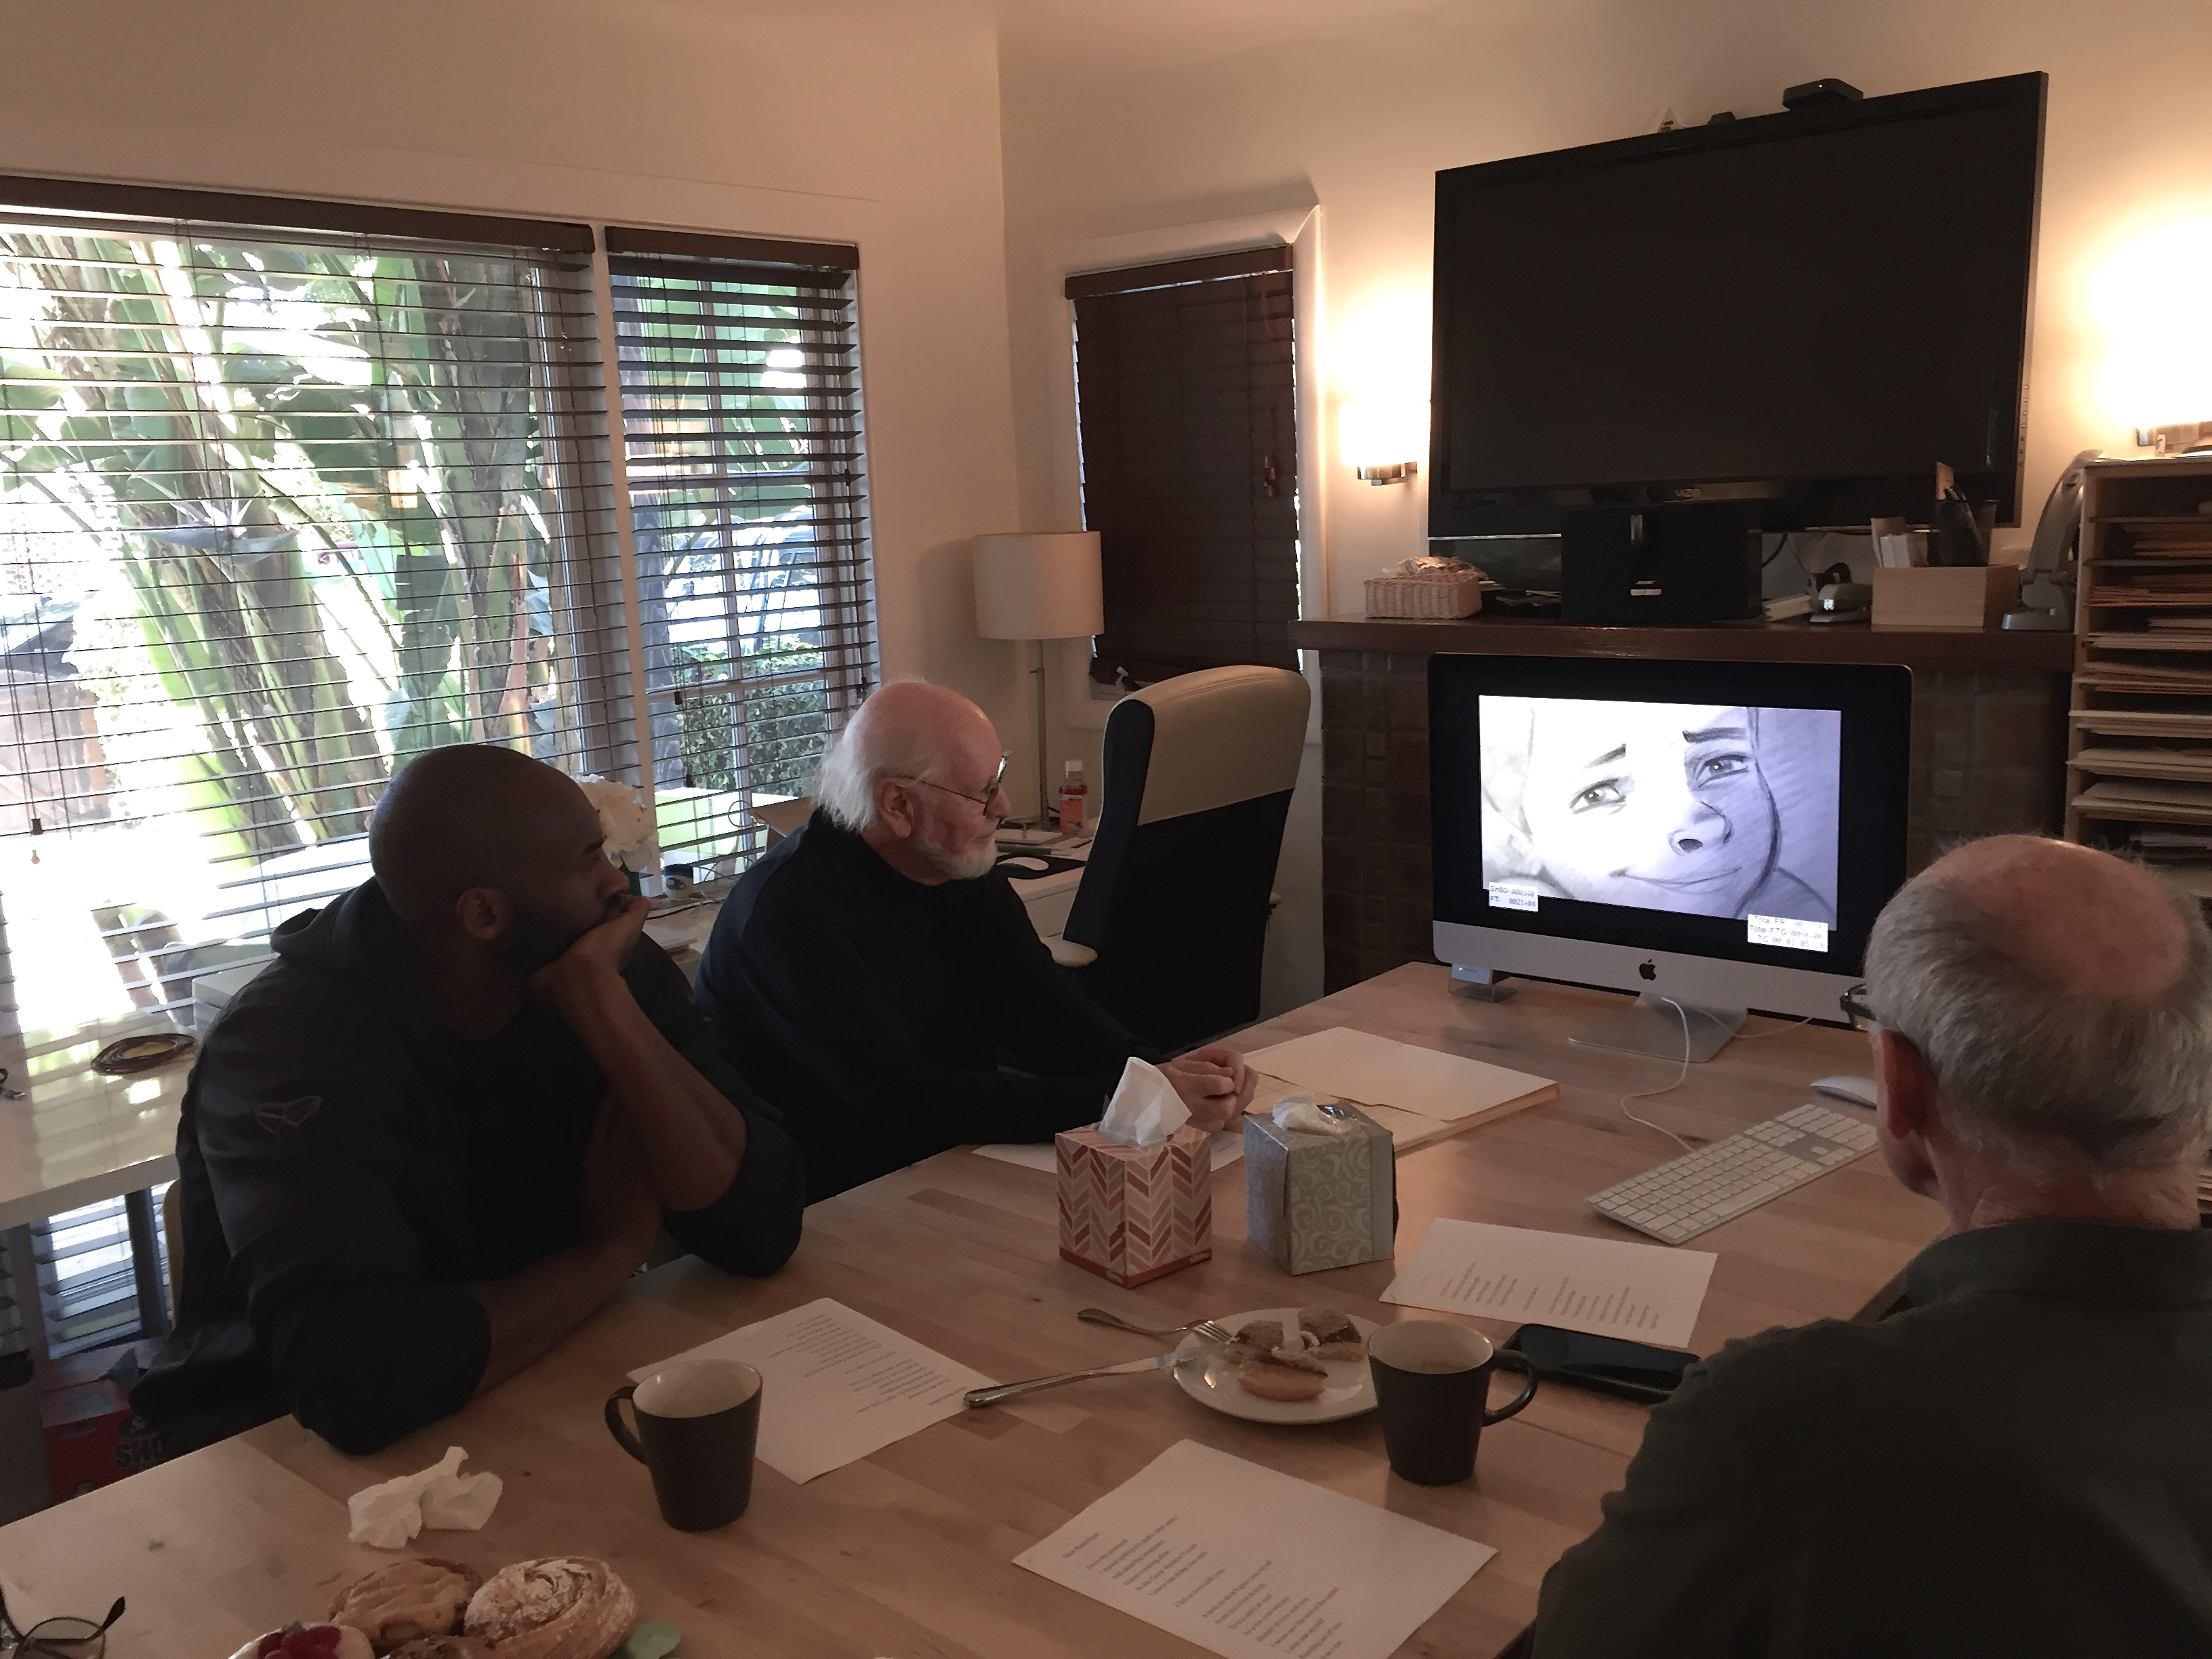 With Dear Basketball Animator Glen Keane Meets Nba Star